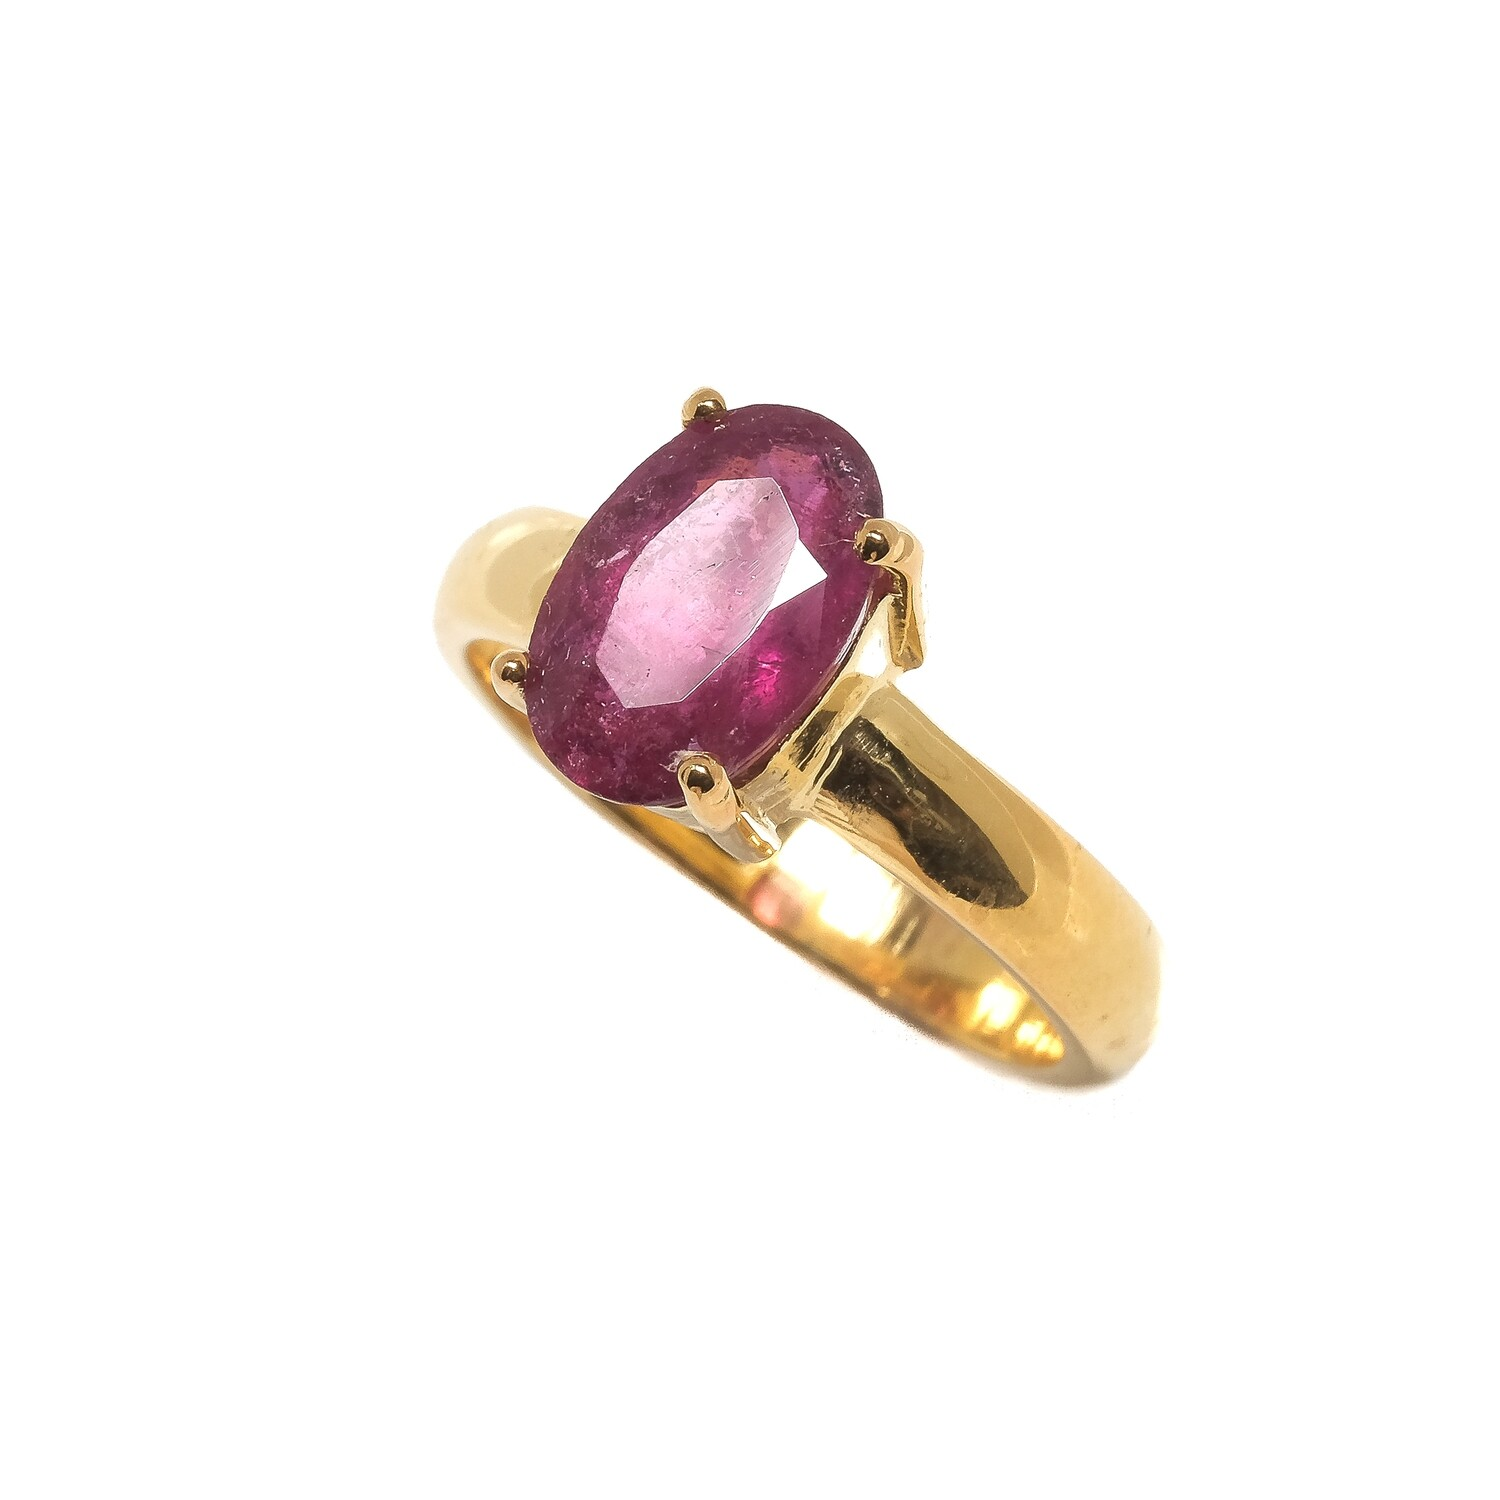 Solitaire Ring - Pink Tourmaline Rubylite - 5⌀ (Vermeil)